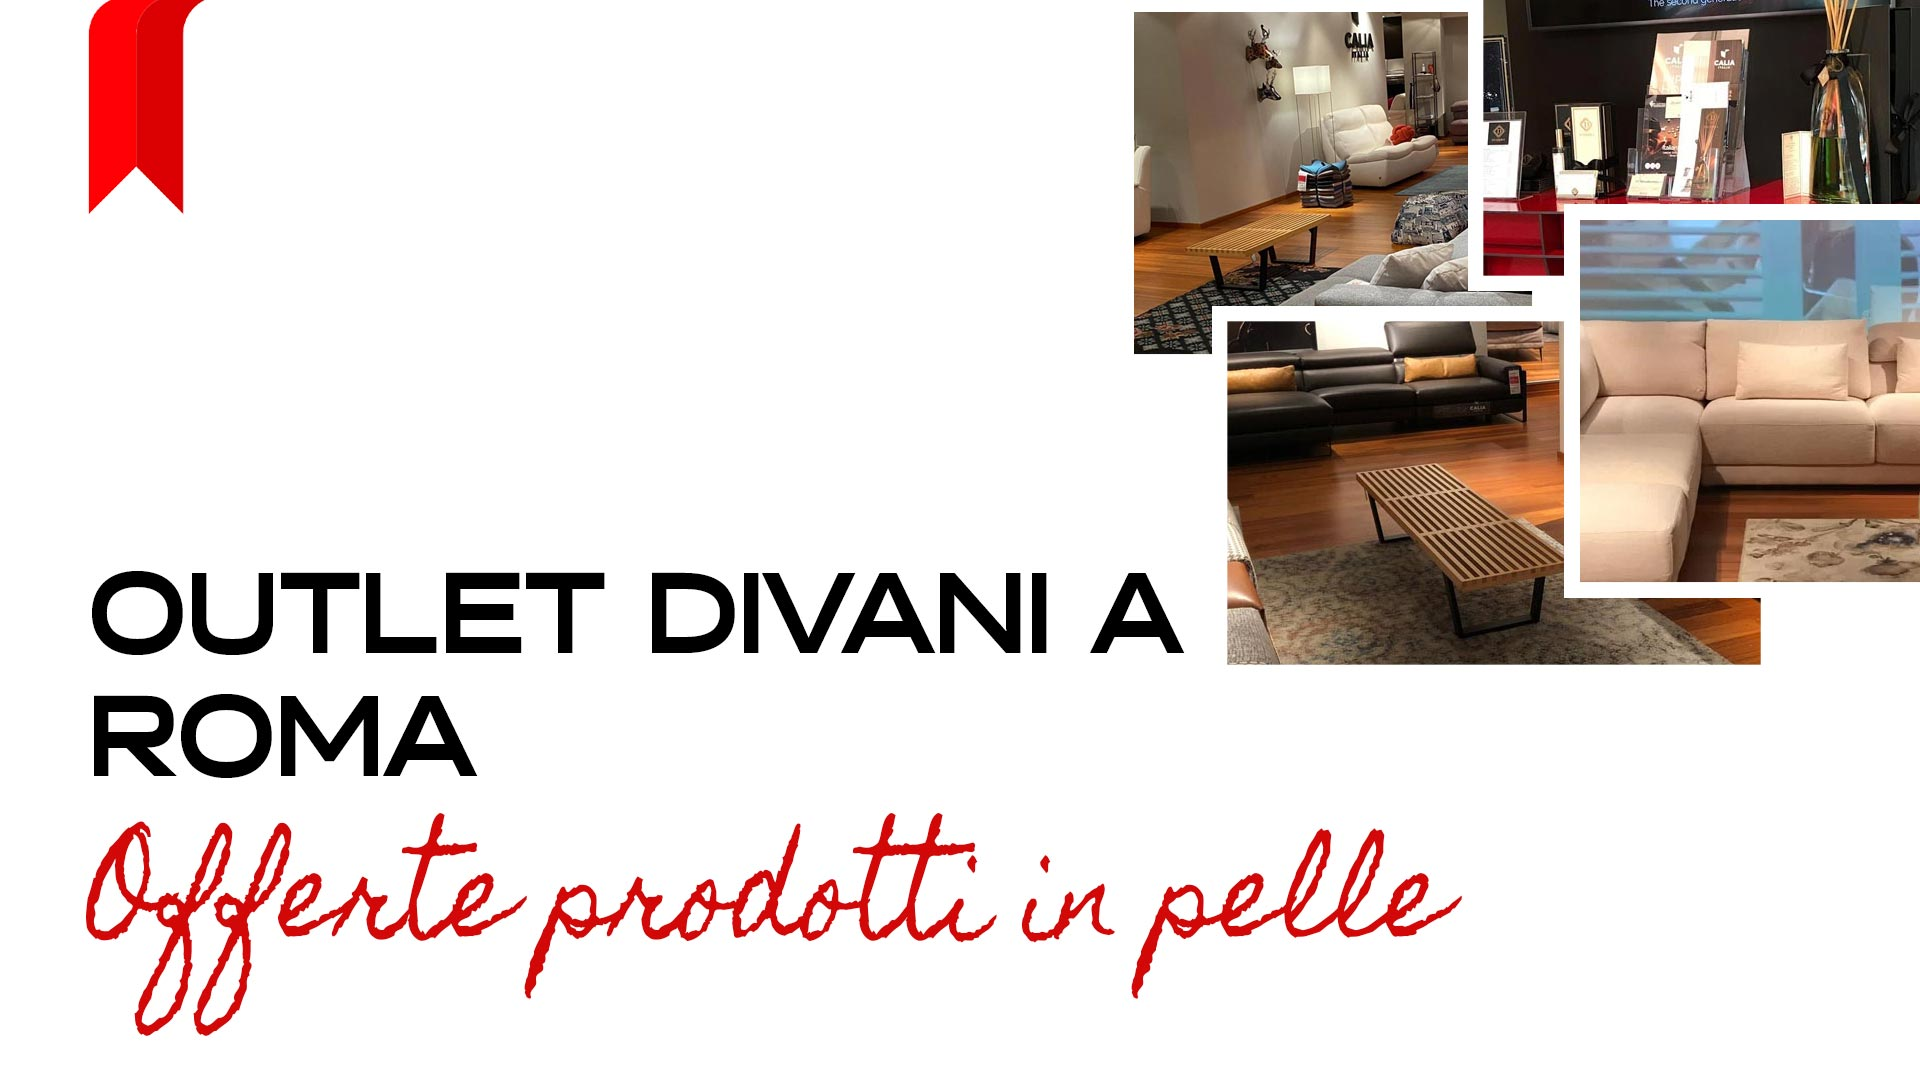 You are currently viewing Outlet Divani a Roma: offerte sui prodotti in Pelle